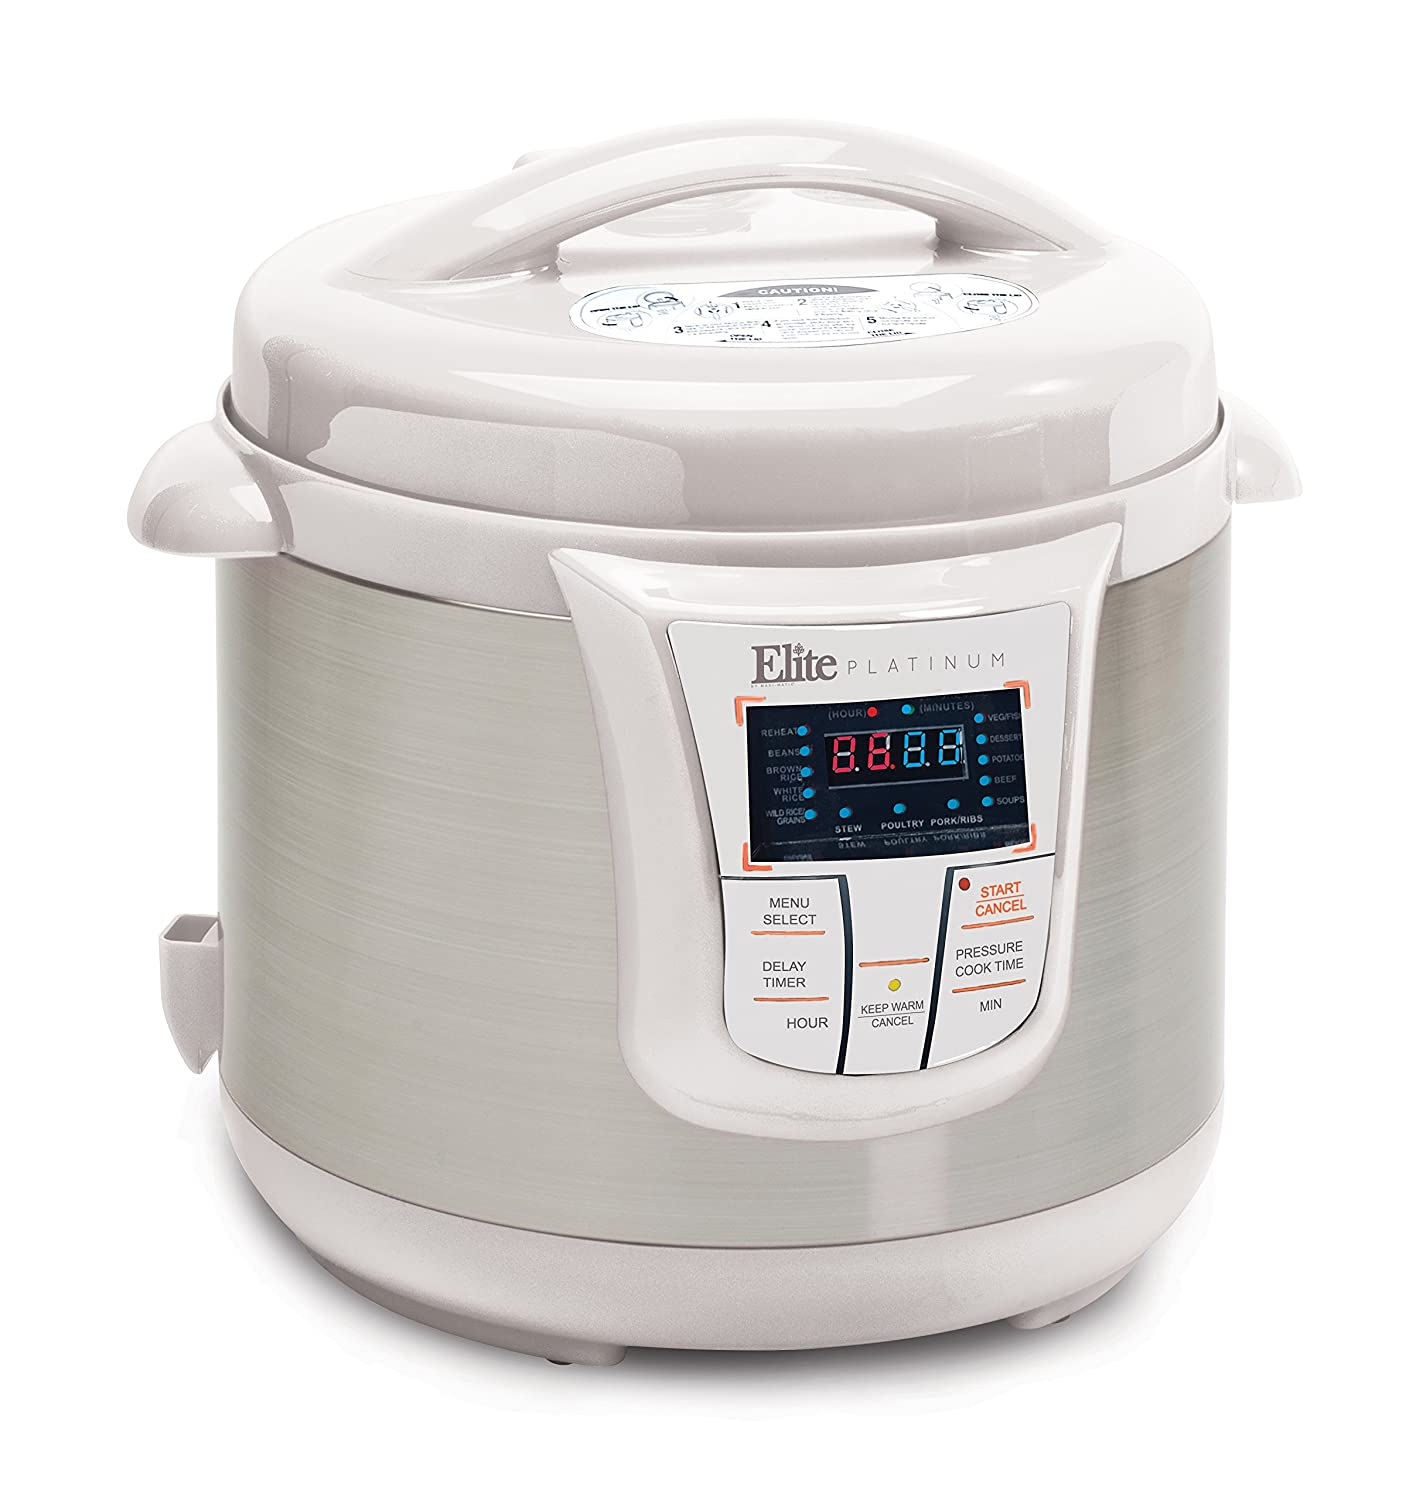 Amazon.com: Elite Platinum 8 Quart 14-in-1 Multi-Use Programmable Pressure  Cooker, Slow Cooker, Rice Cooker, Sauté, and Warmer - White: Kitchen &  Dining